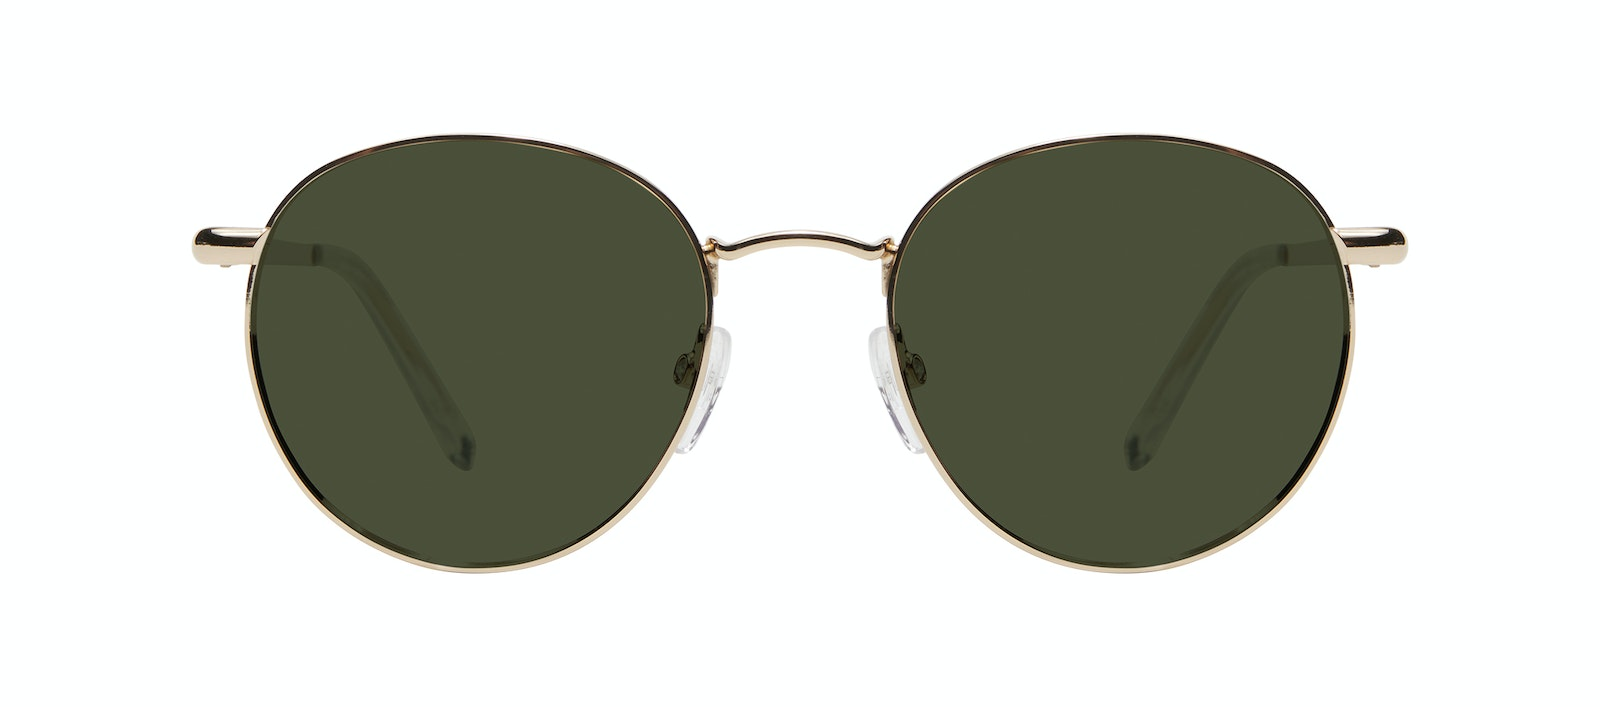 Affordable Fashion Glasses Round Sunglasses Women Dynasty M Gold Front